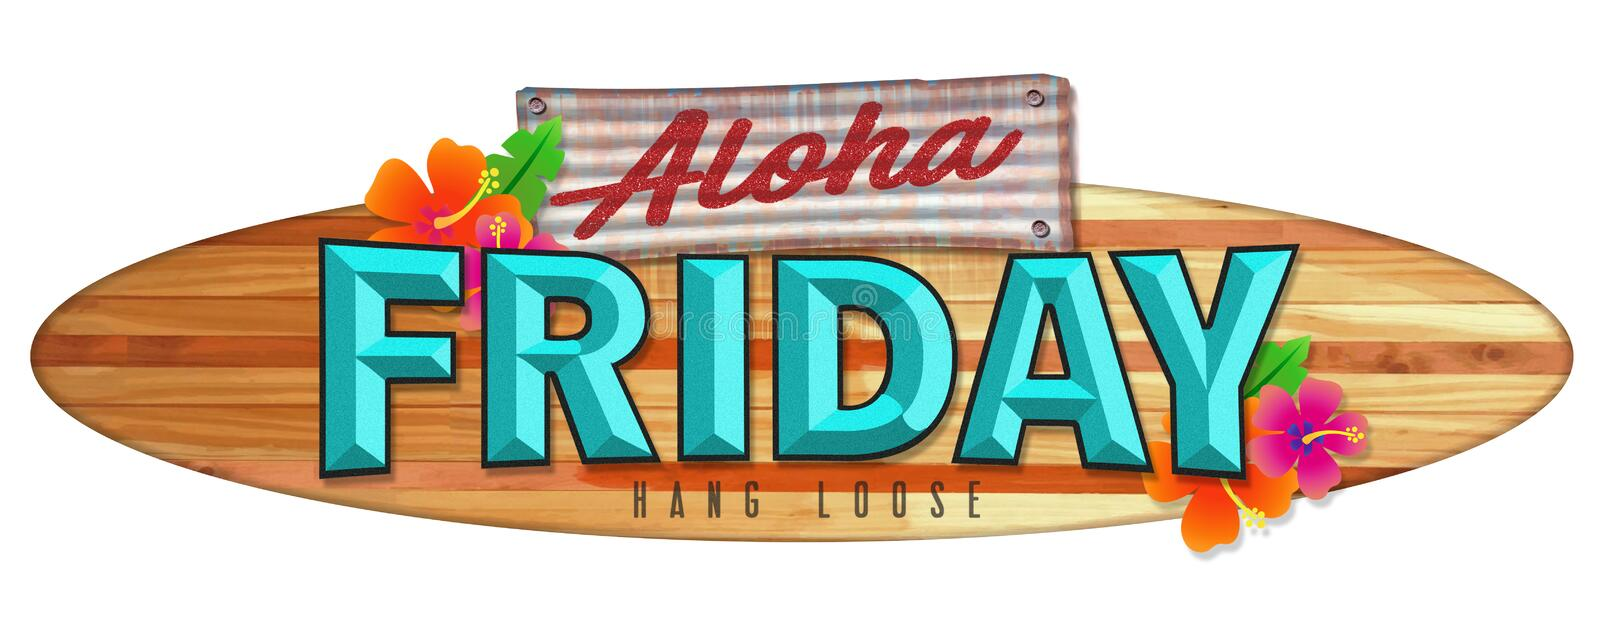 Aloha Friday Surfboard Sign. Longboard Wood Hawaii Vintage Retro colorful flowers tropical vacation travel stock illustration